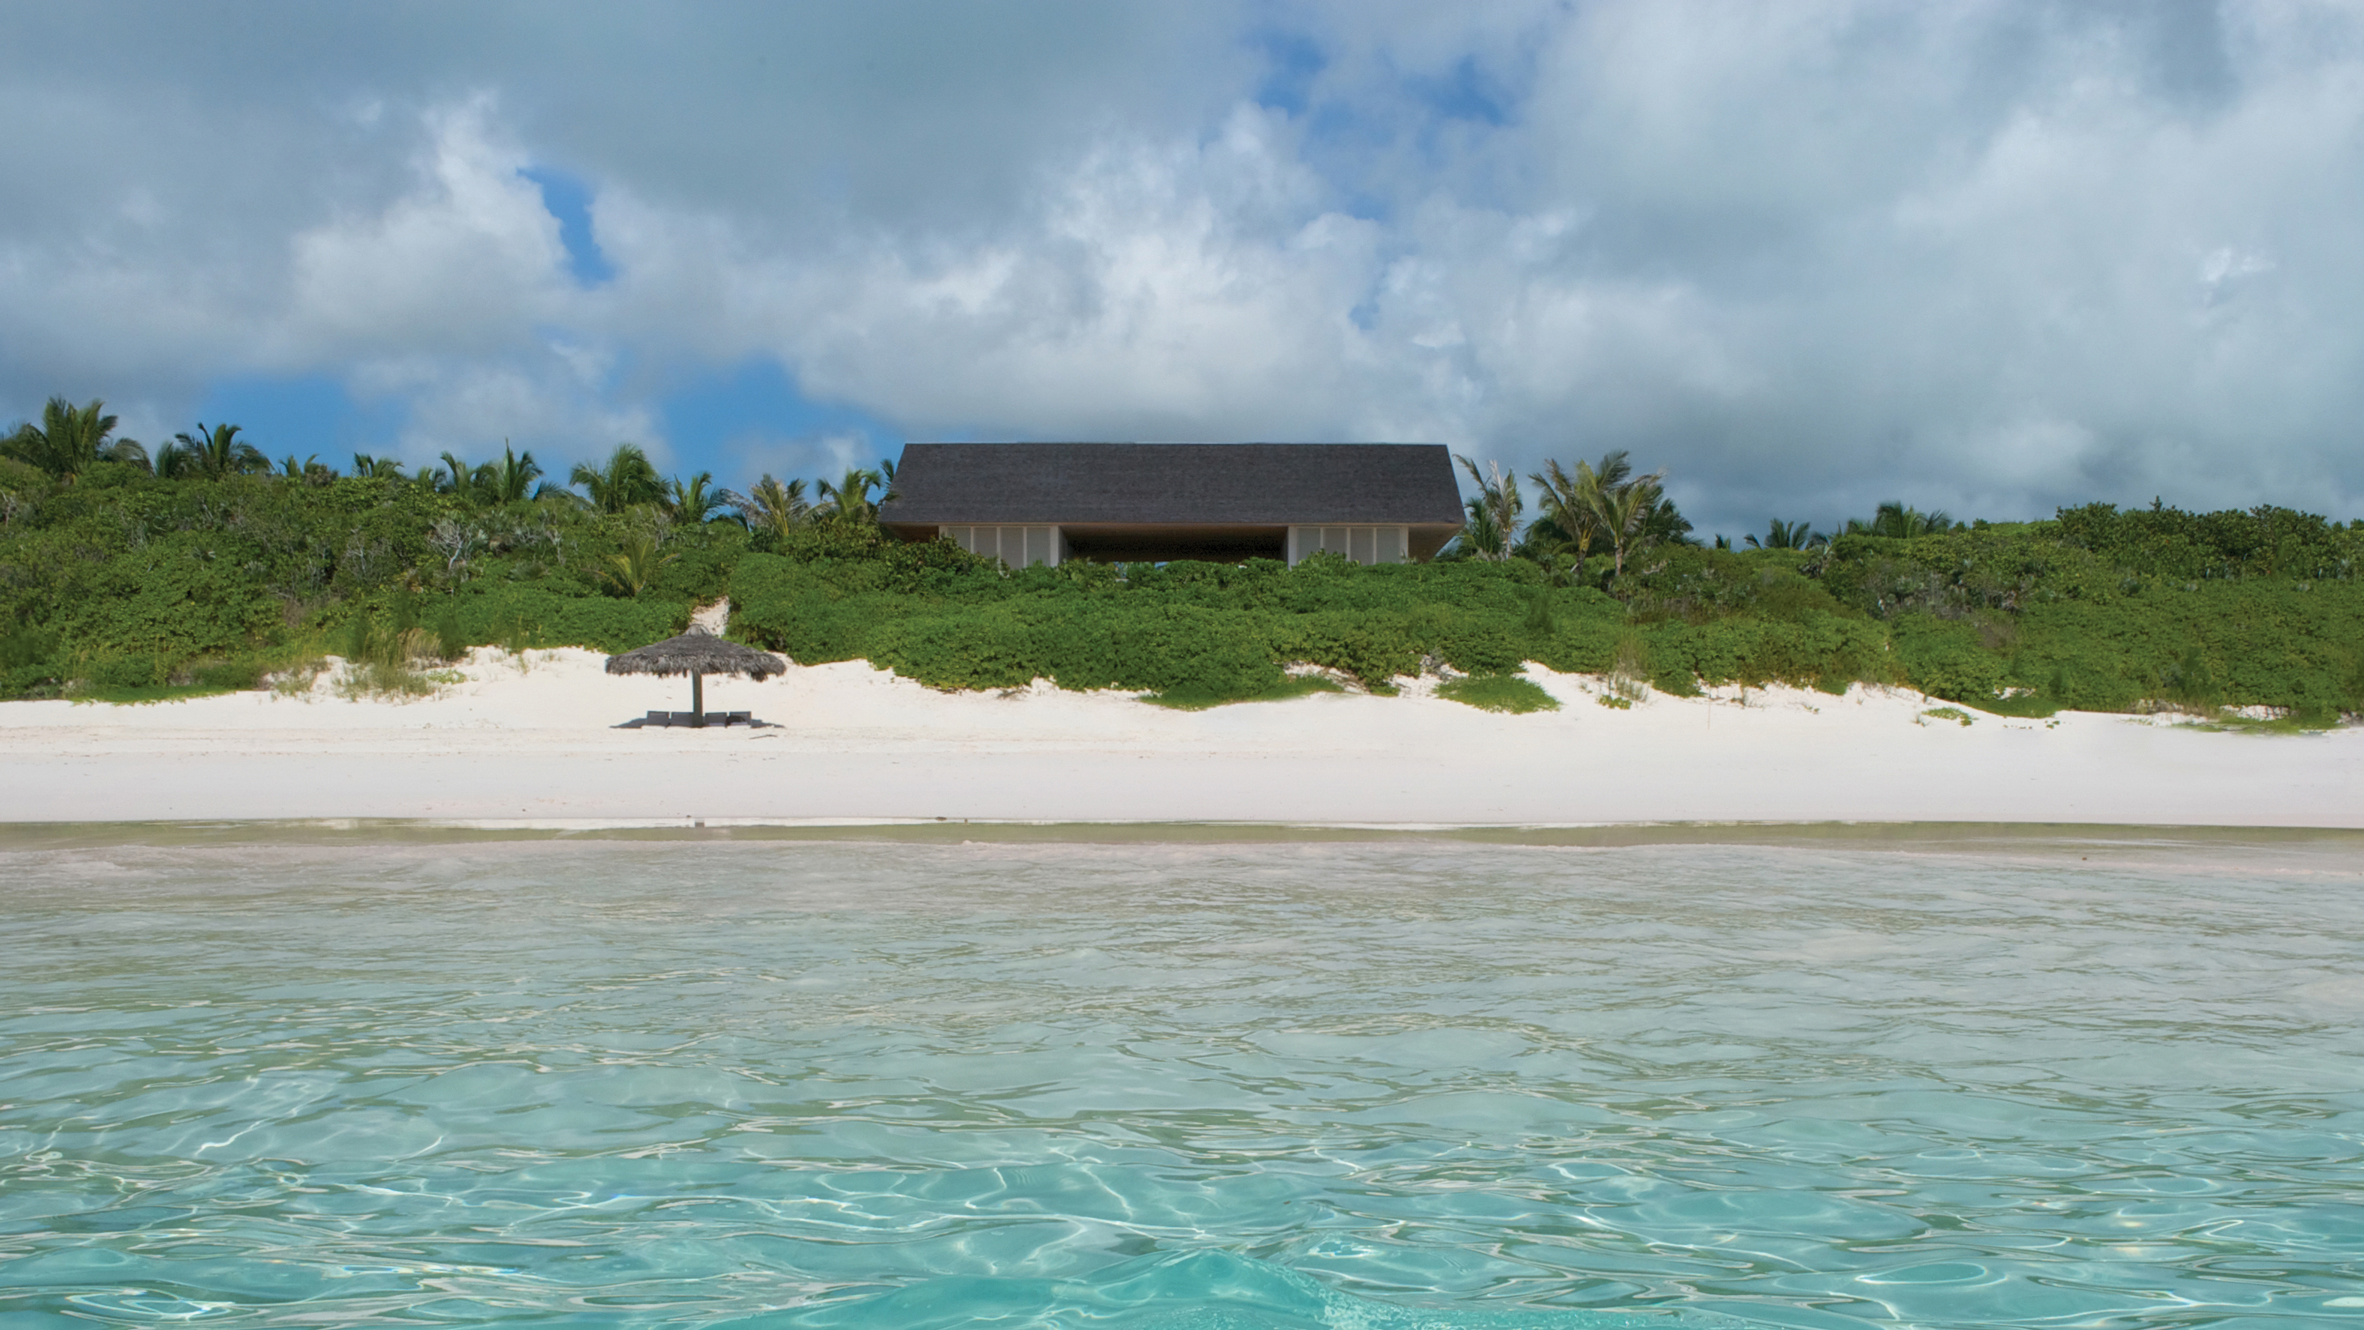 Oppenheim Architecture founder's Bahamas holiday home perches on a sandy dune